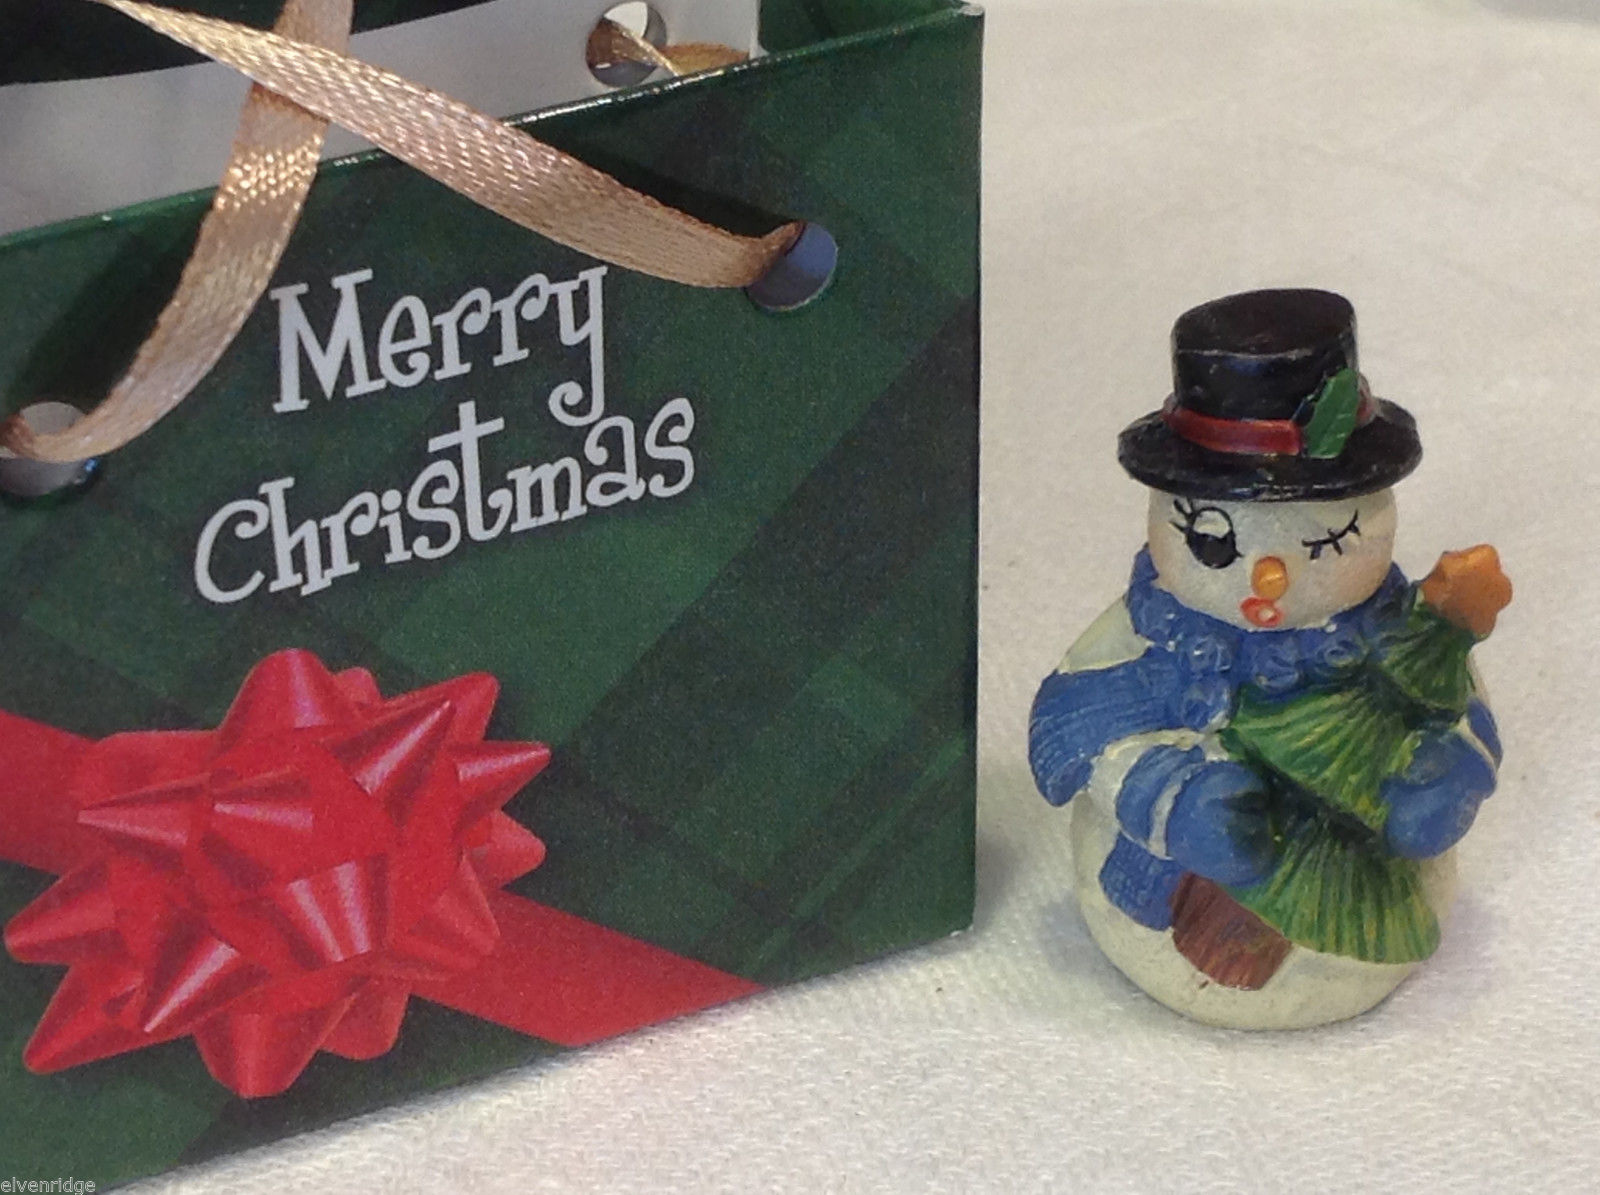 Christmas bag Snowman w pine tree #2 perfect gift 4 shut ins elderly person